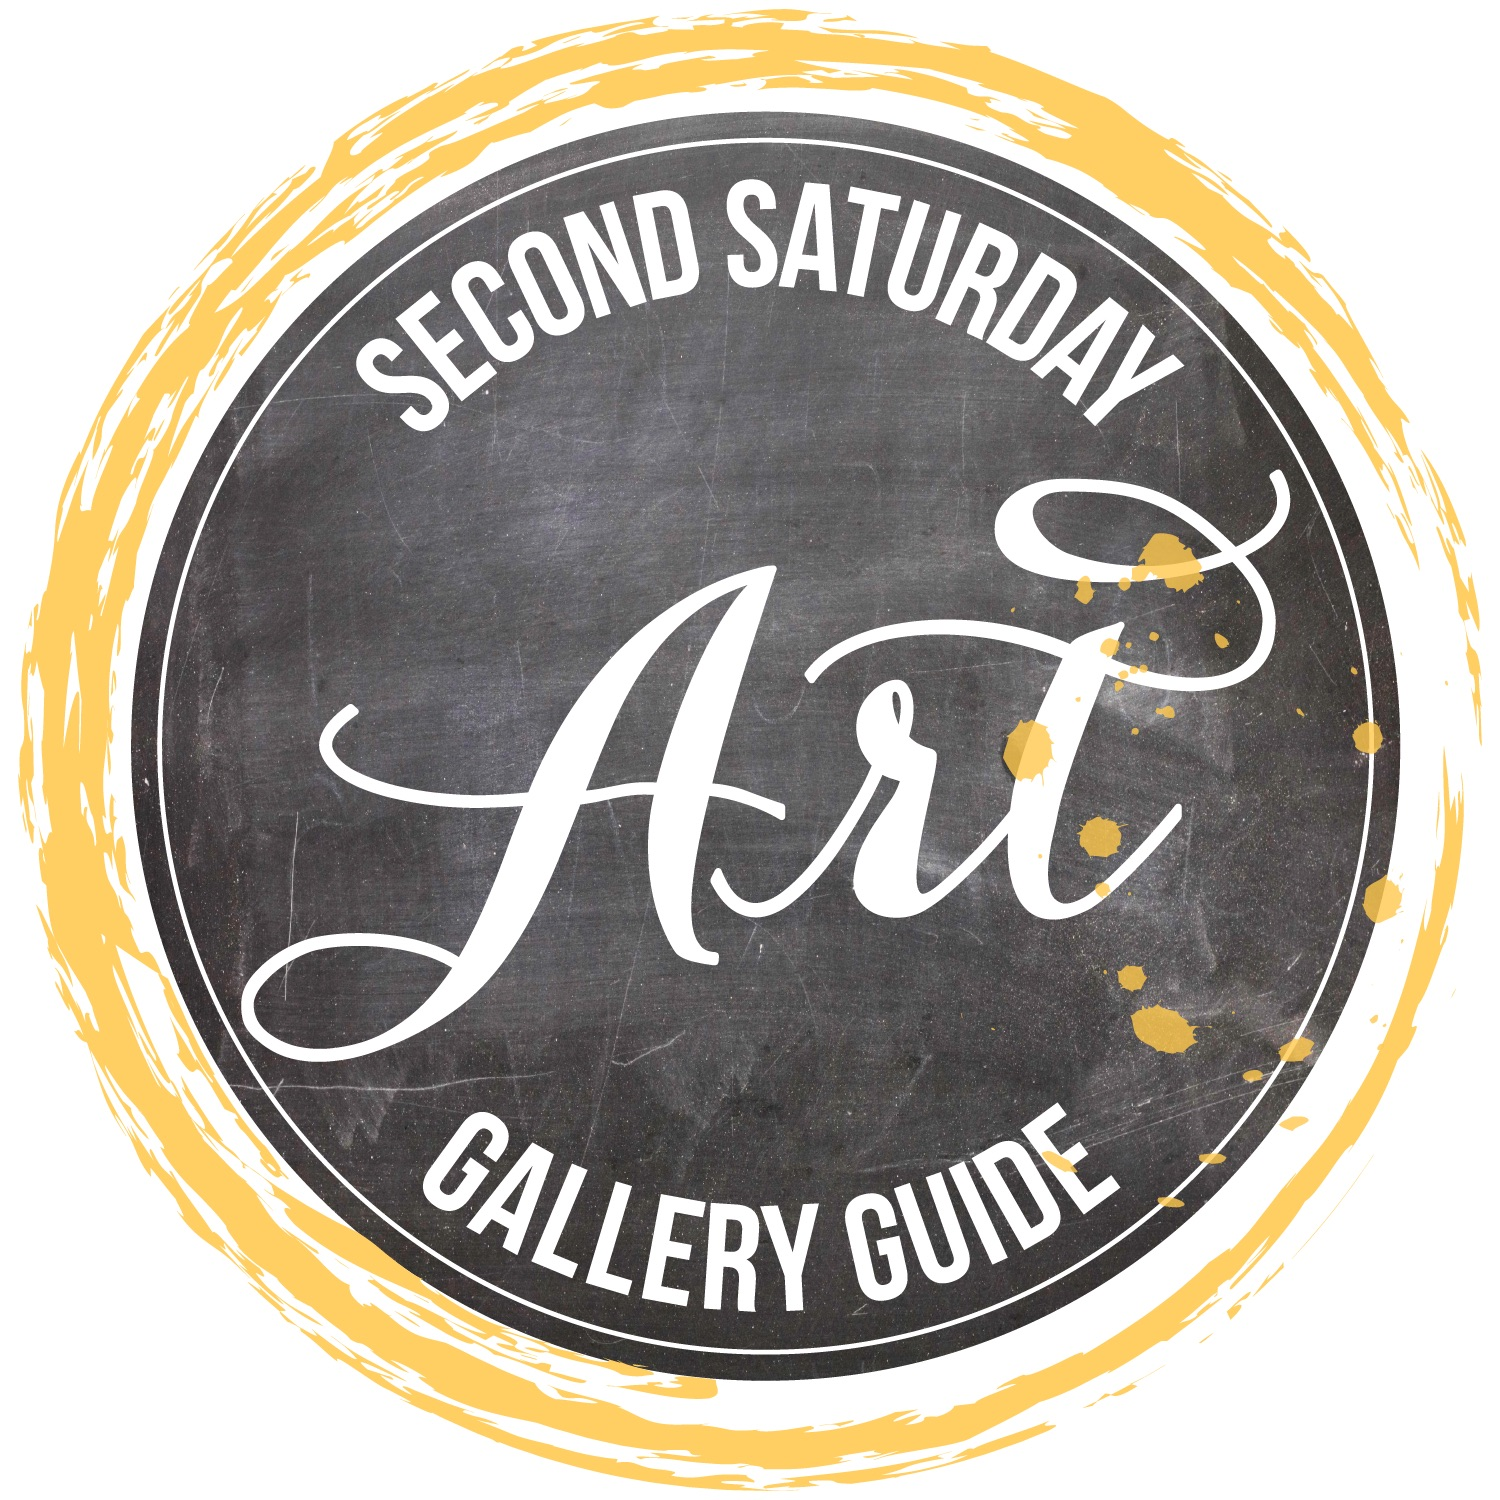 Art HAPPENINGS in Beacon, New York, FOR May 2019 and beyond!